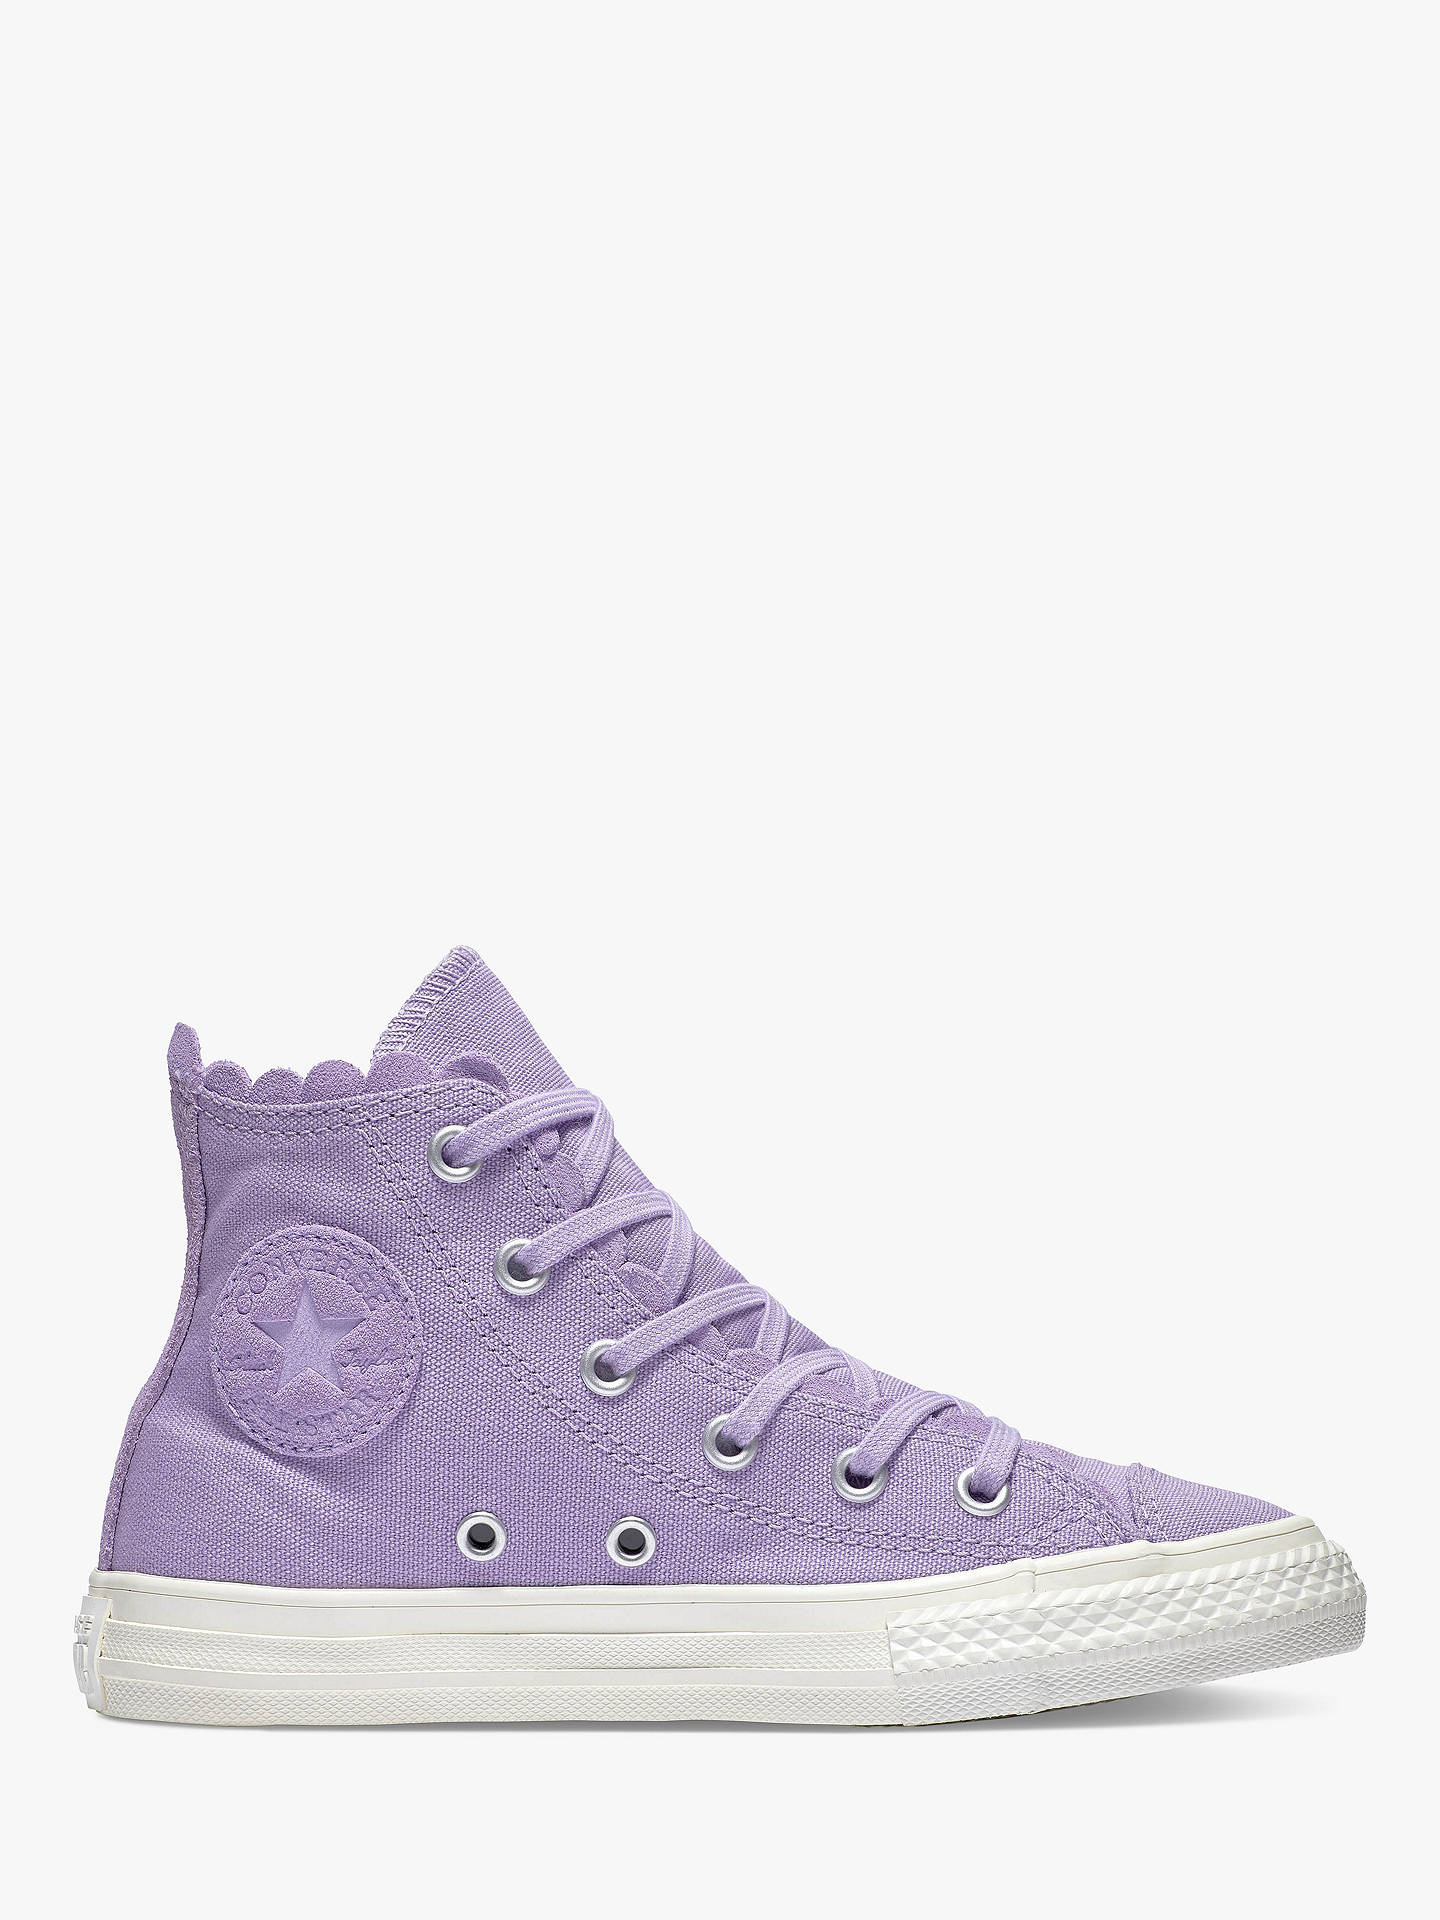 9924c7158965ea Buy Converse Children s Chuck Taylor All Star Frilly Thrills Hi-Top  Trainers